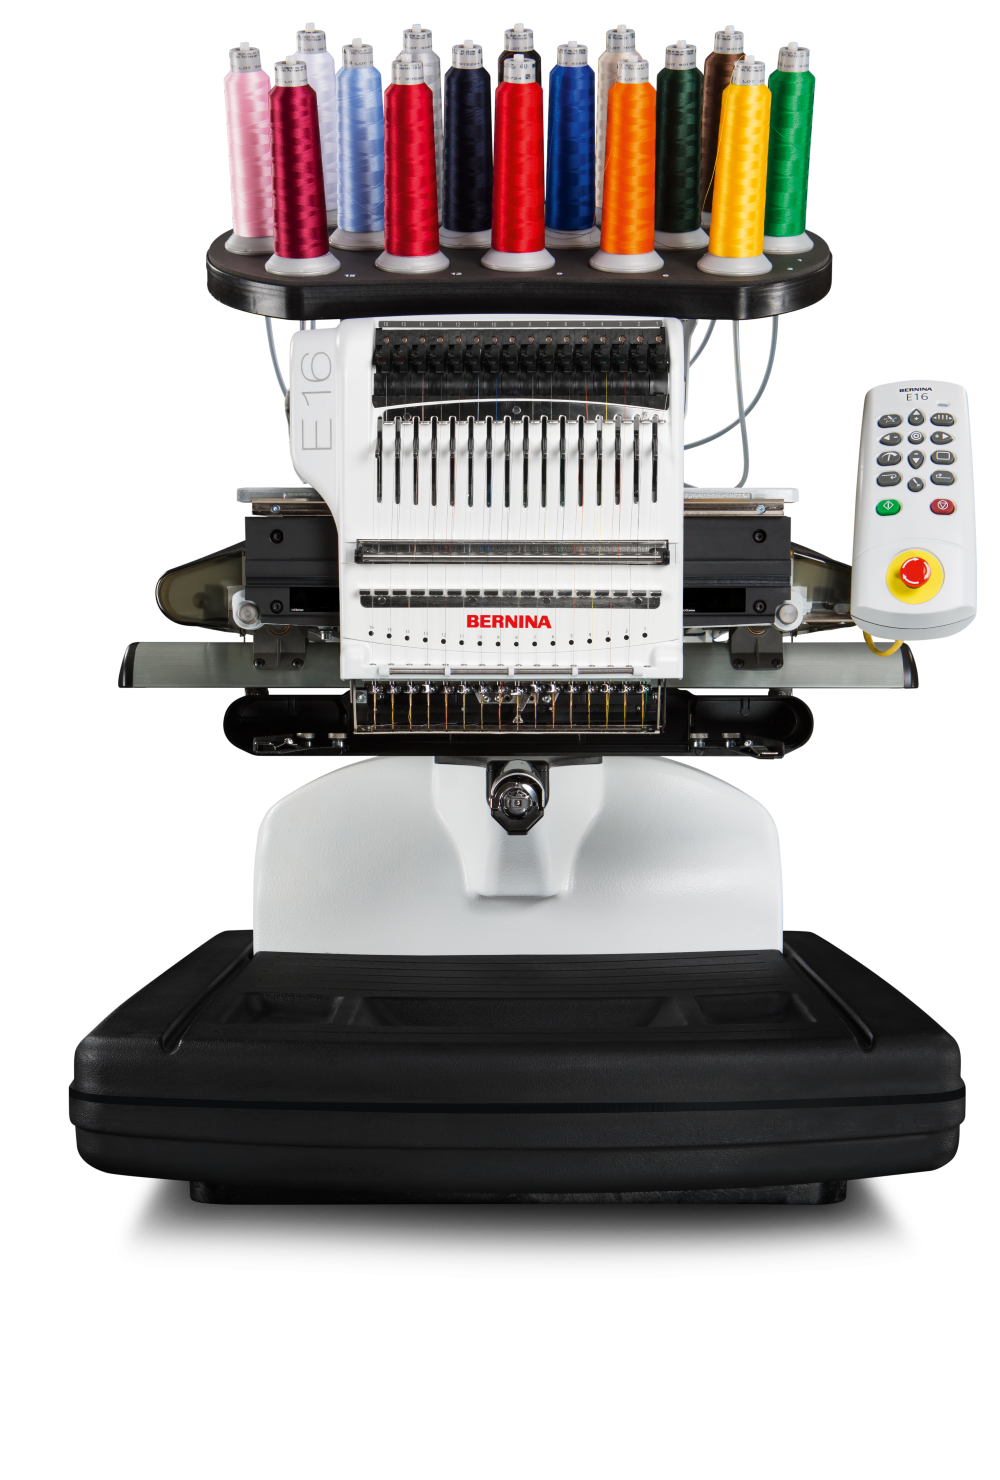 embroidery quilting sewing machine